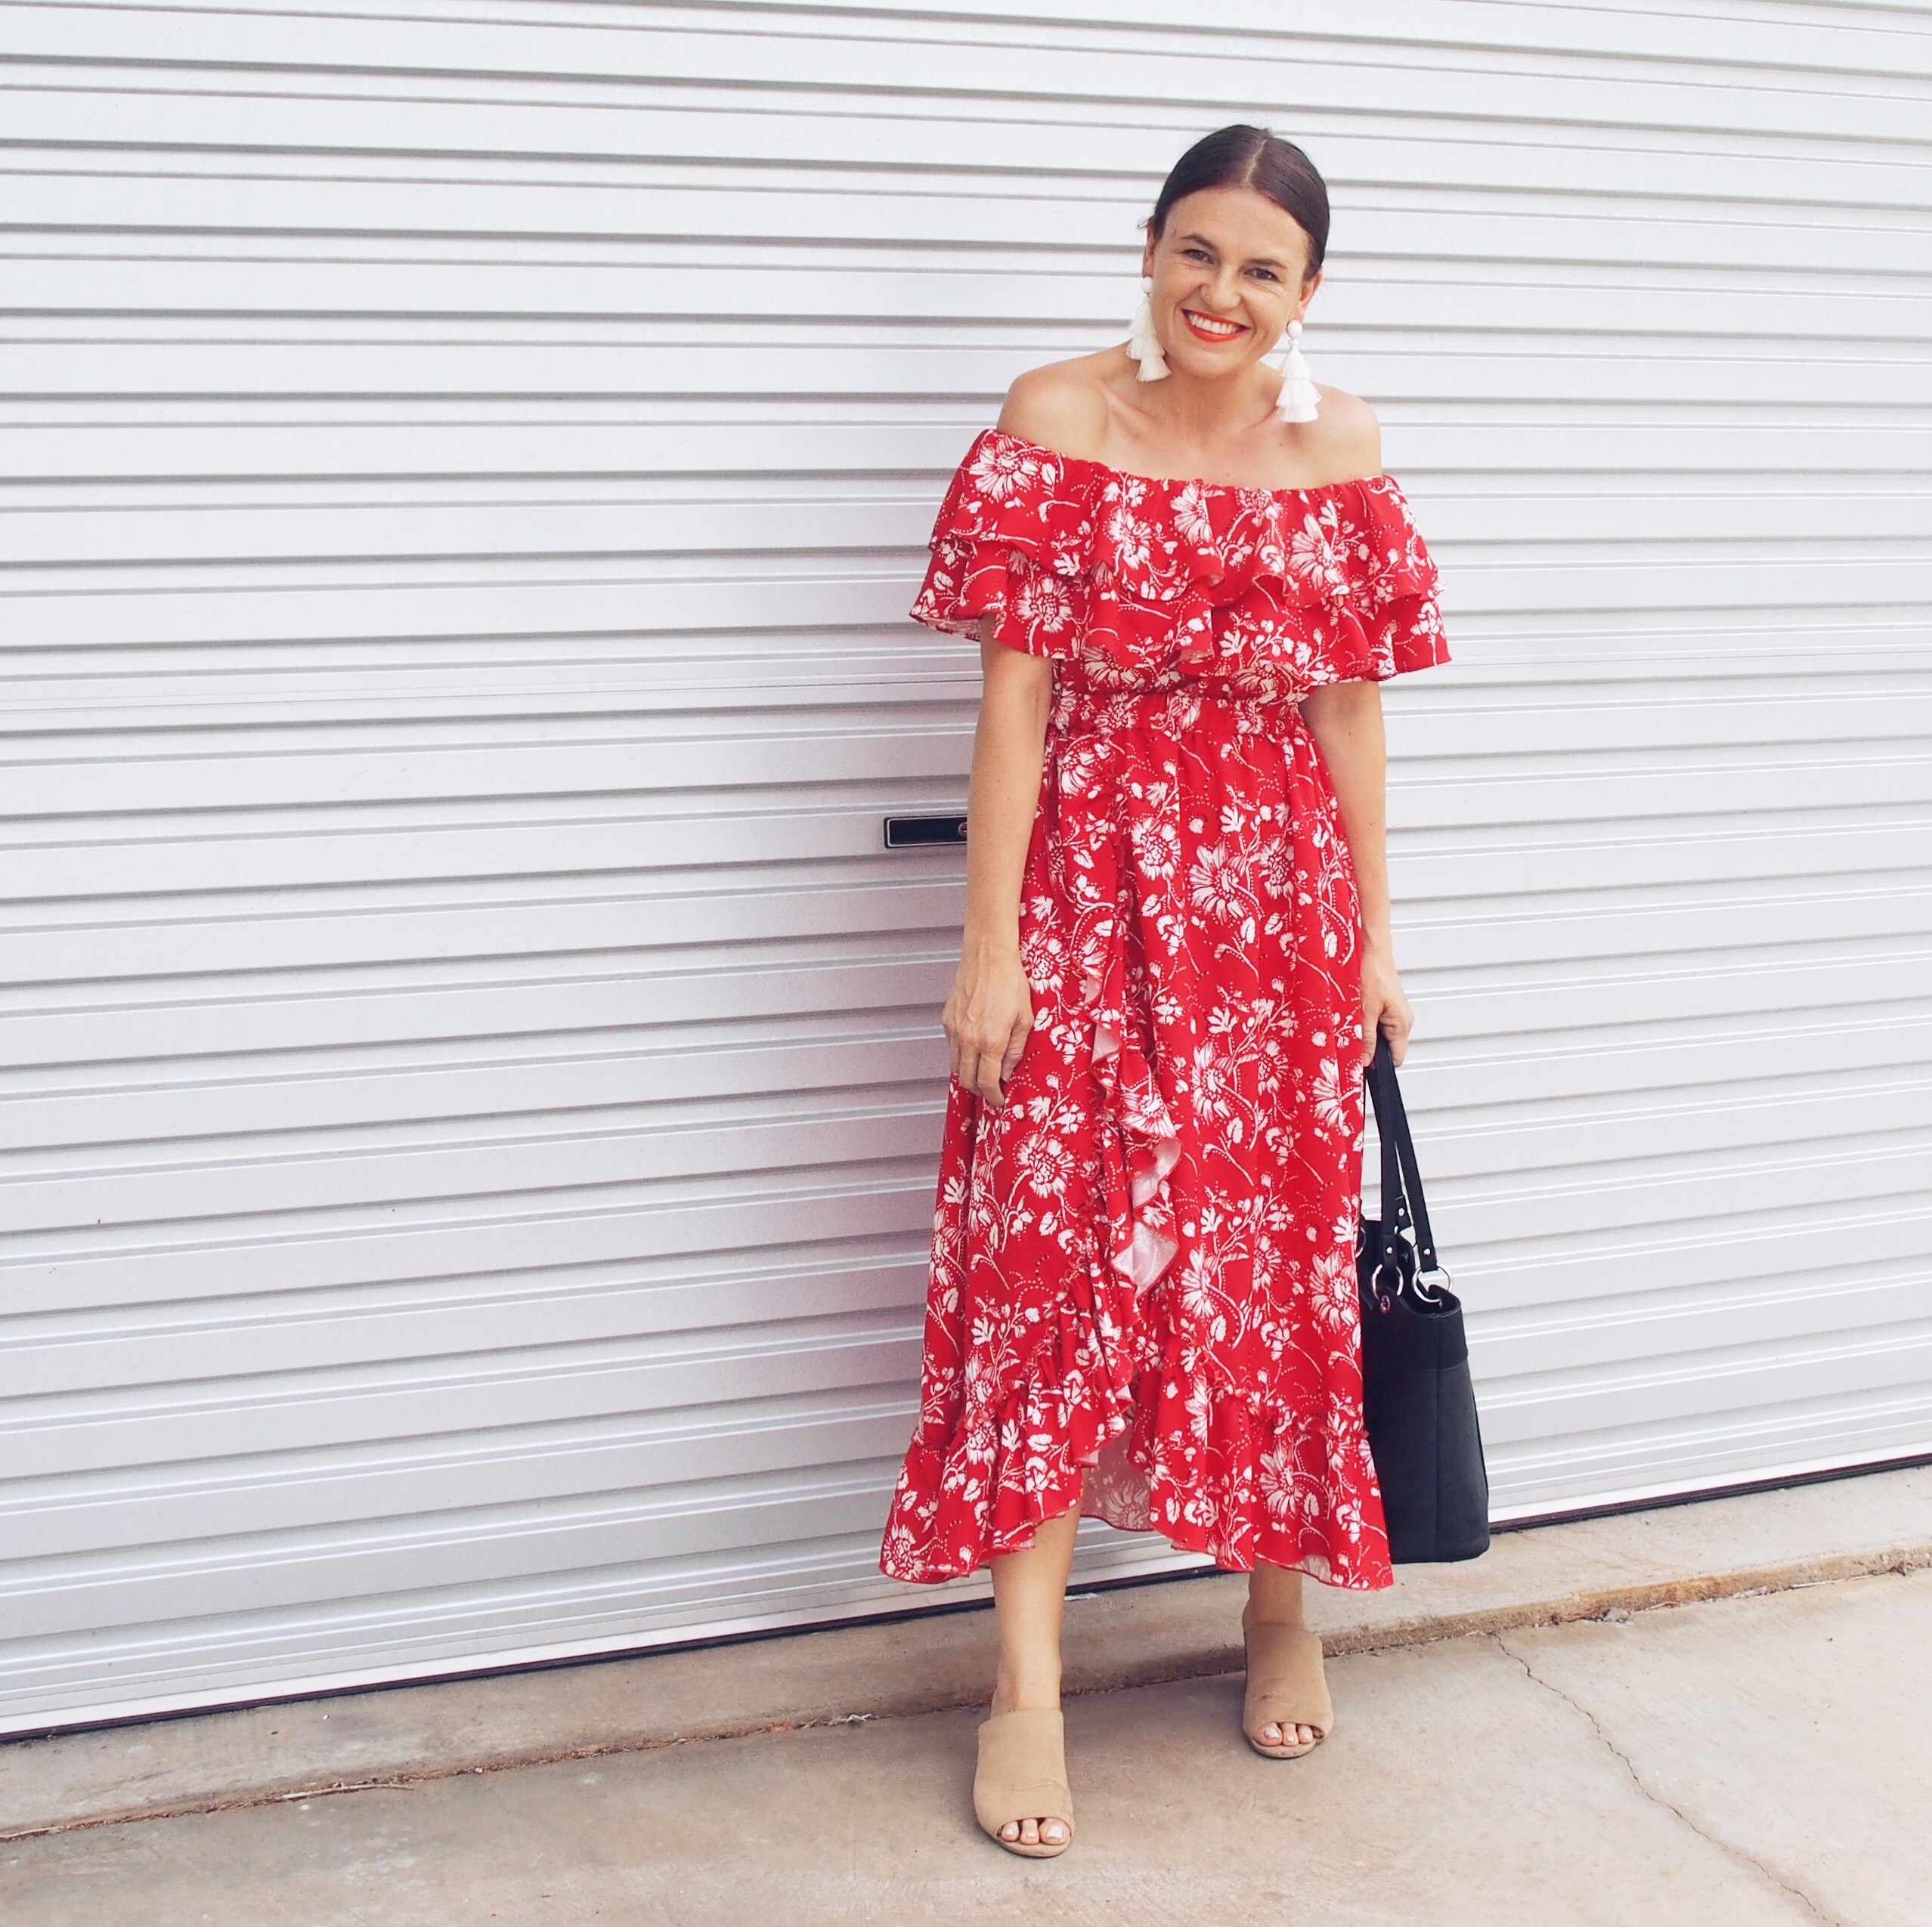 luulahbelle red off the shoulder dress